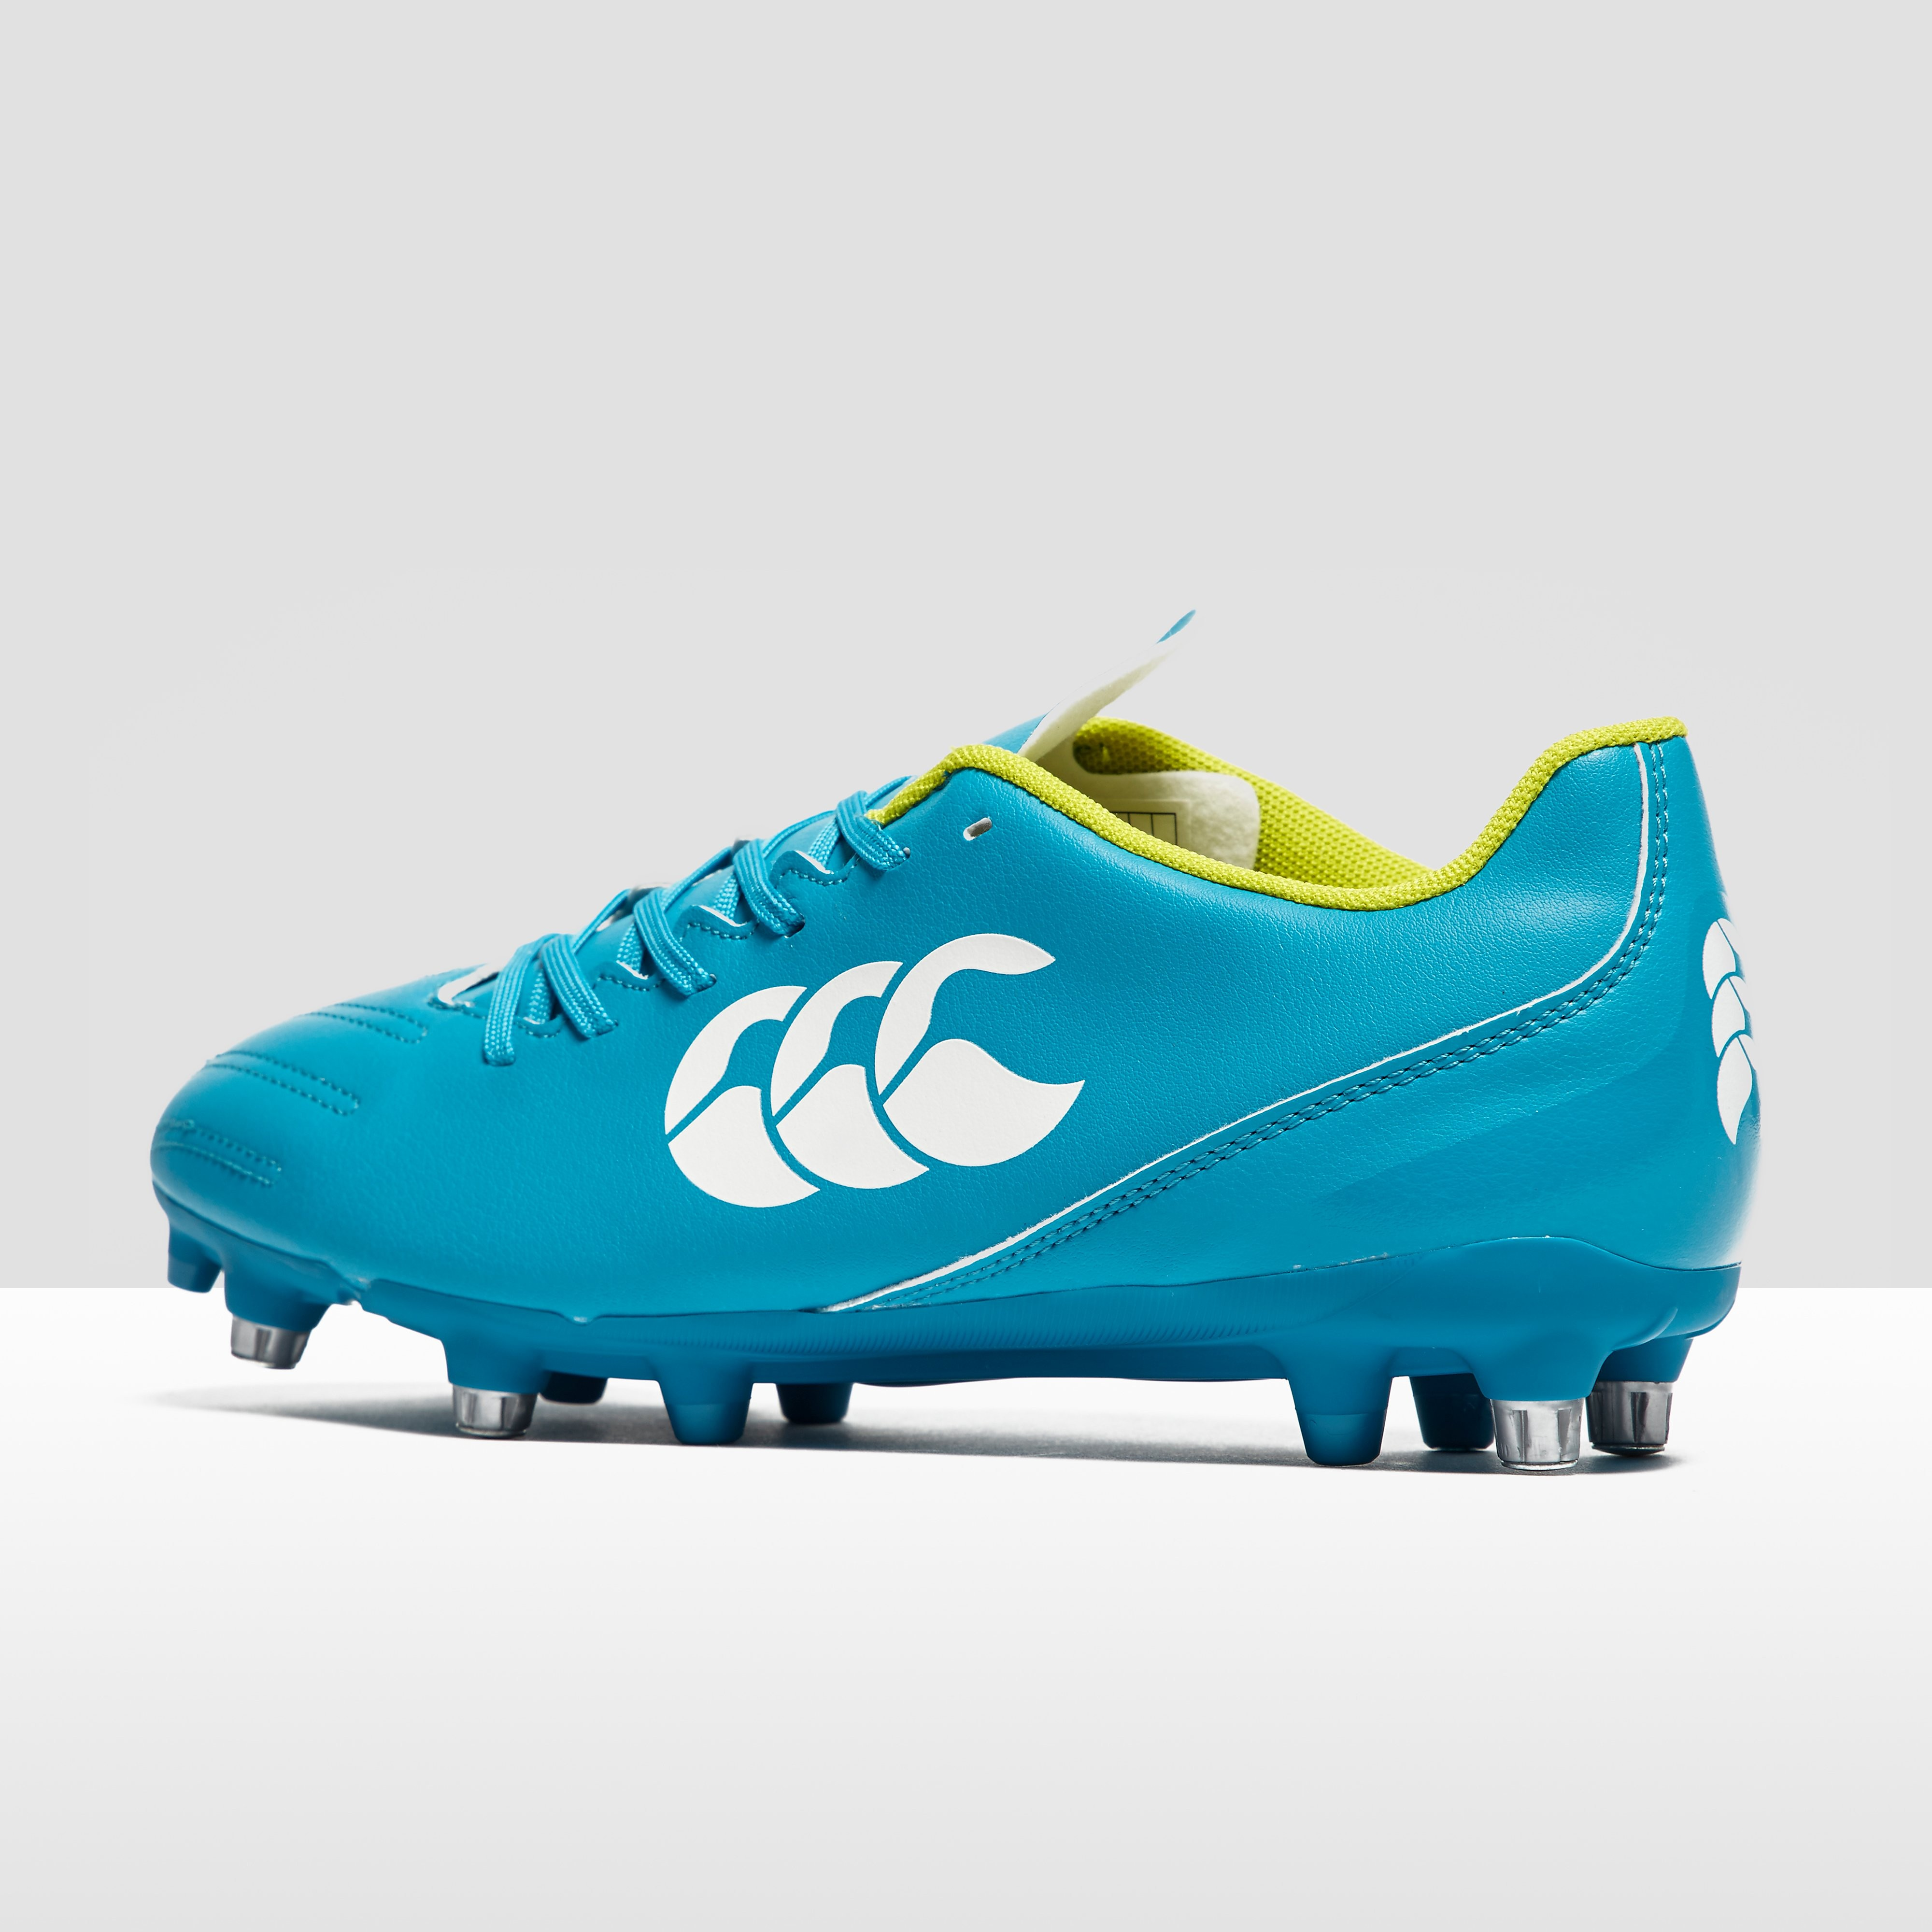 Canterbury CANTERBURY CONTROL 2.0 SG Rugby Boots